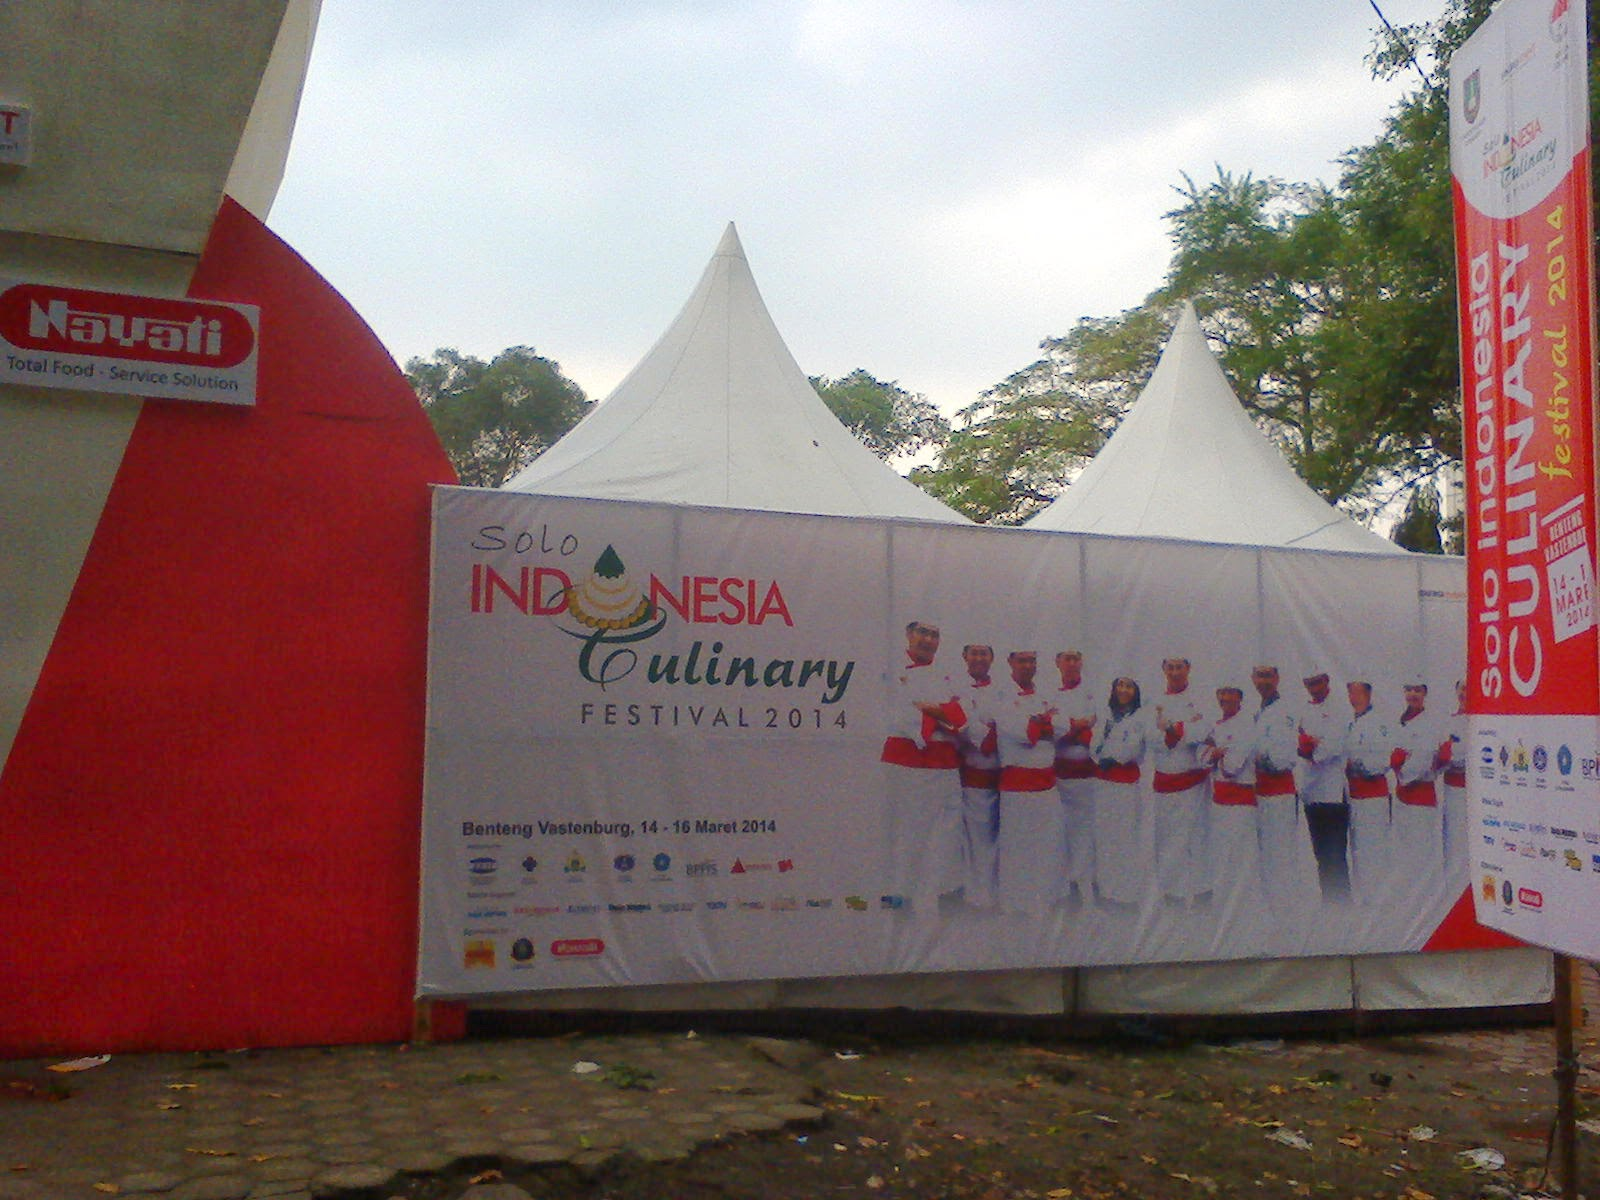 SOLO INDONESIA CULINARY FESTIVAL 2014